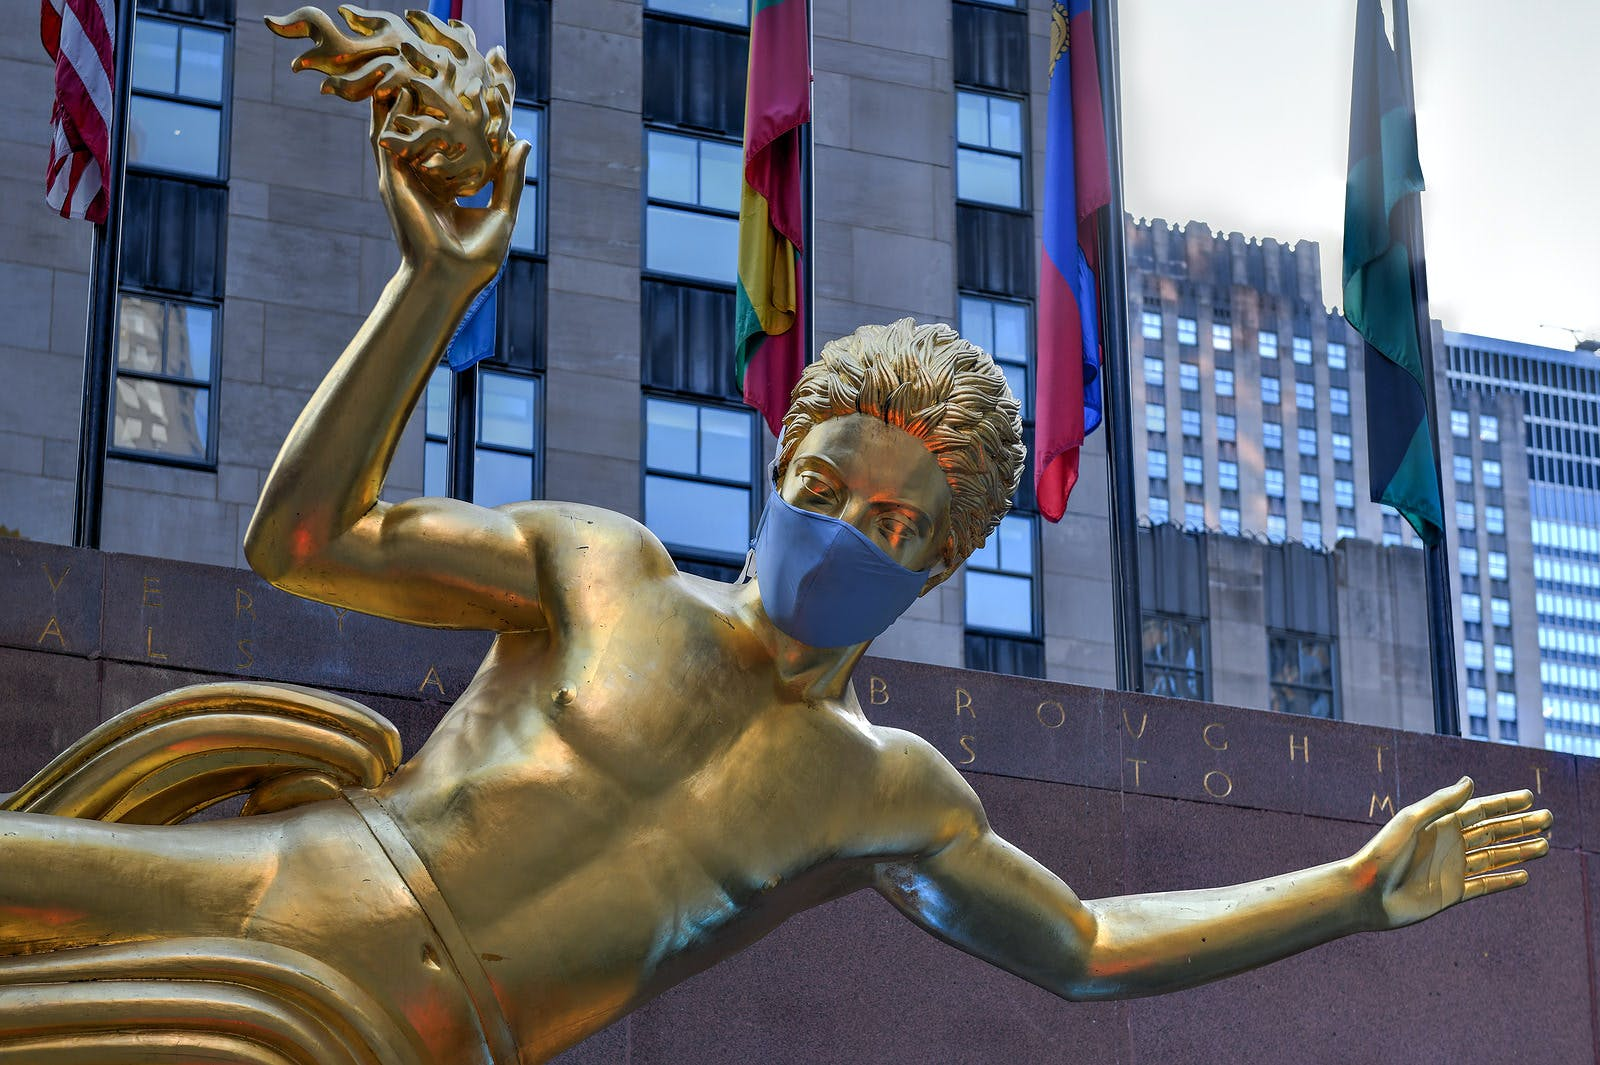 New York, NY / USA – Jul 2, 2020: Real estate firm Tishman Speyer fitted masks on Prometheus and other classic statues in Rockefeller Center to remind New Yorkers to wear COVID-19 face coverings.